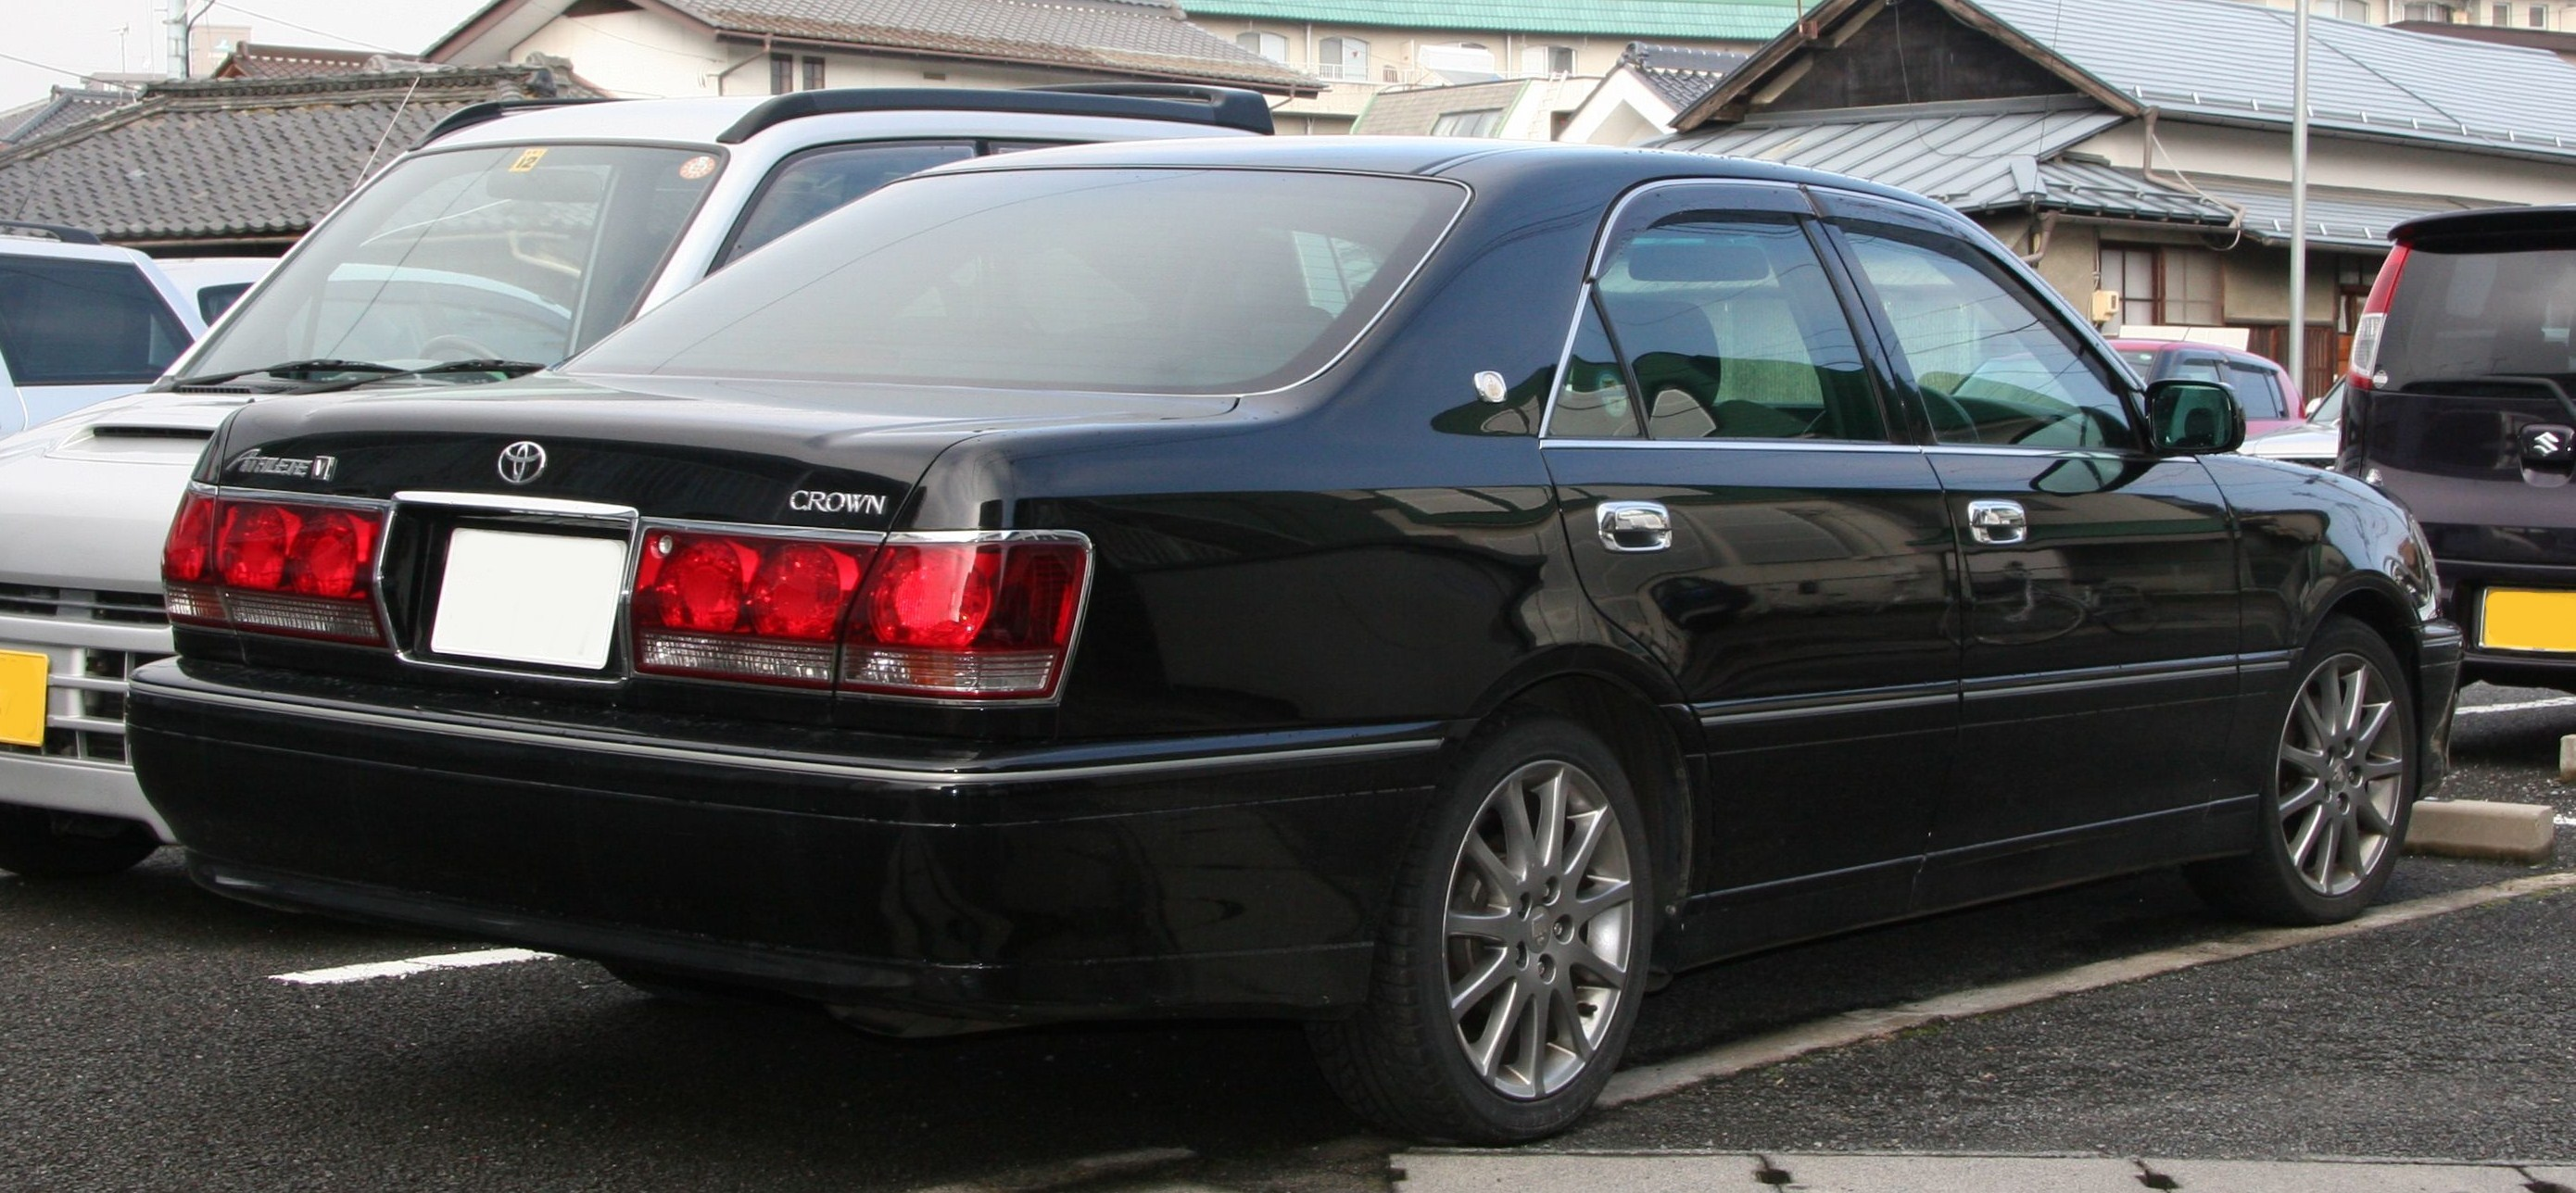 2003 Toyota Crown #7